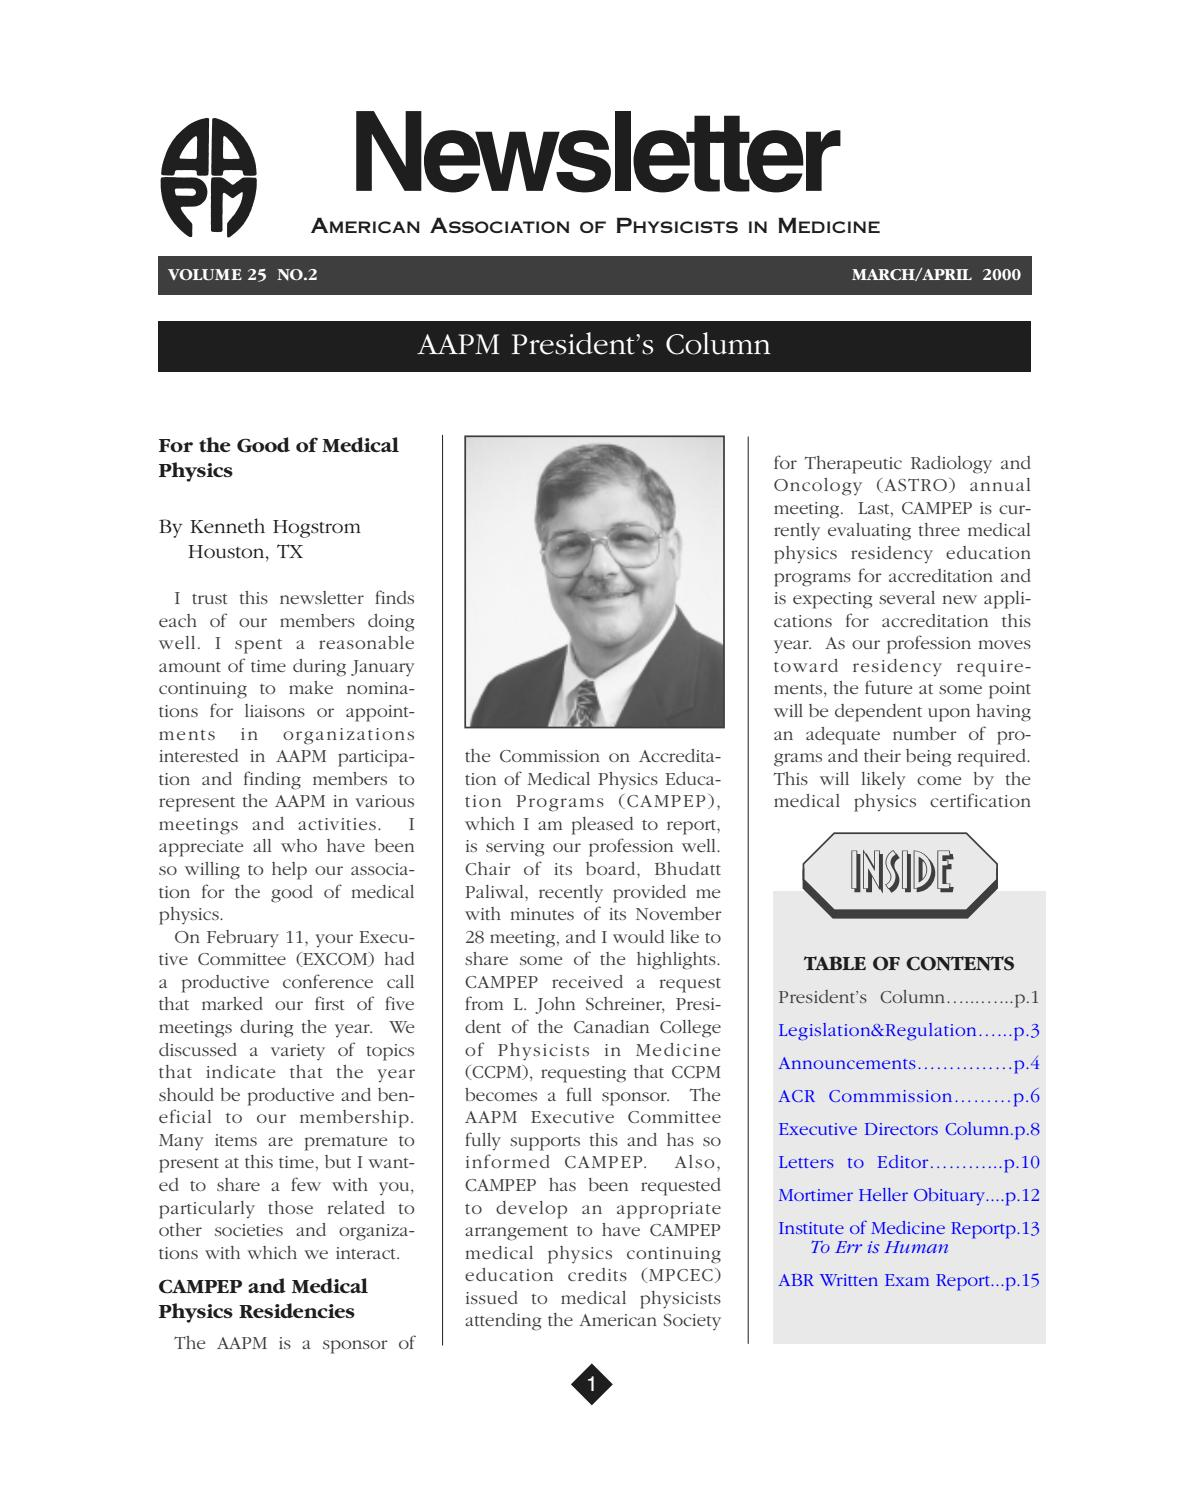 AAPM Newsletter March/April 2000 Vol  25 No  2 by aapmdocs